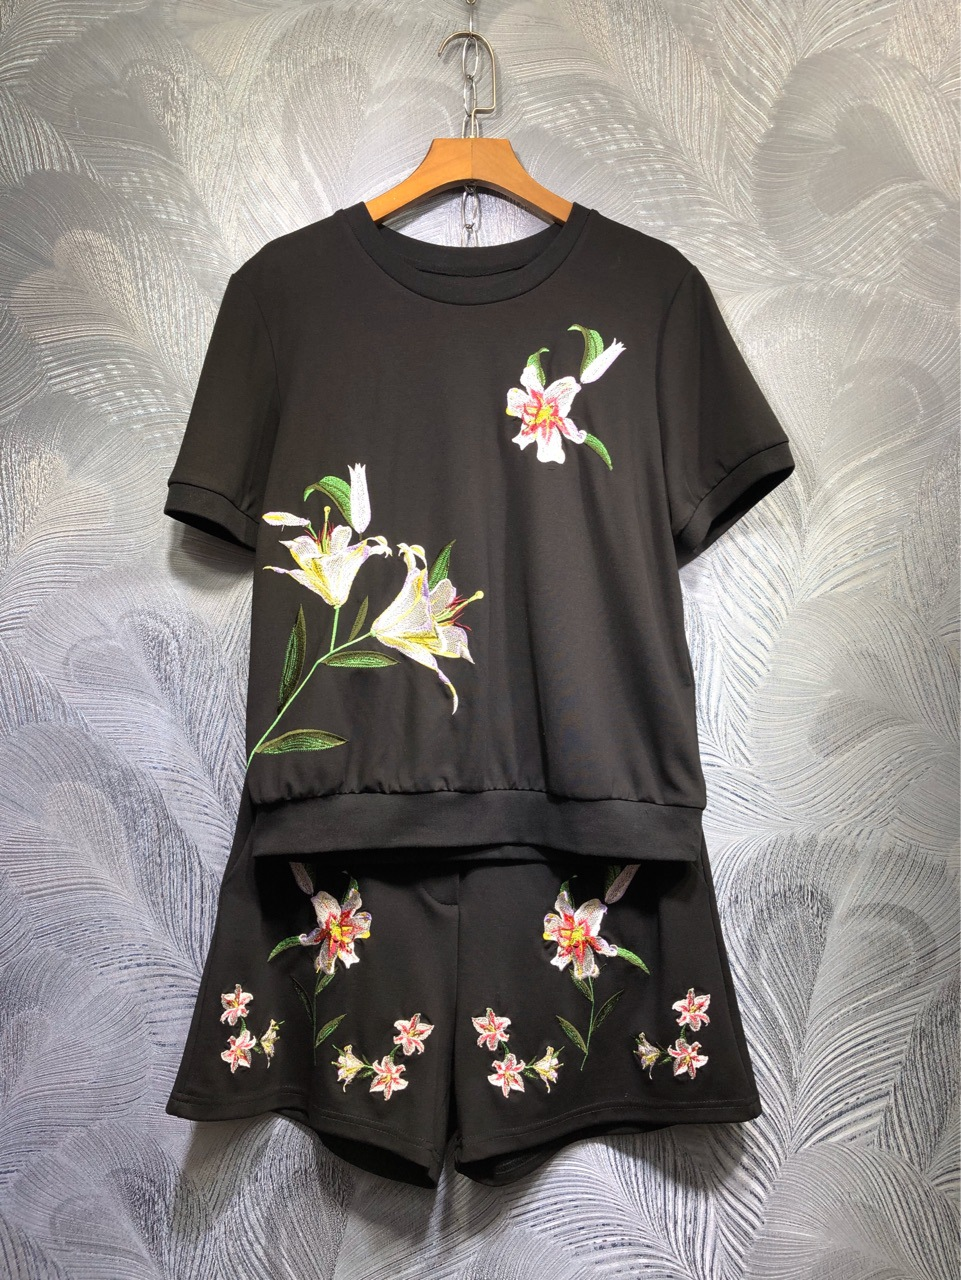 2020 Summer Women's Casual Suit High Quality Embroidery T-shirts + Shorts Two Piece Set B464